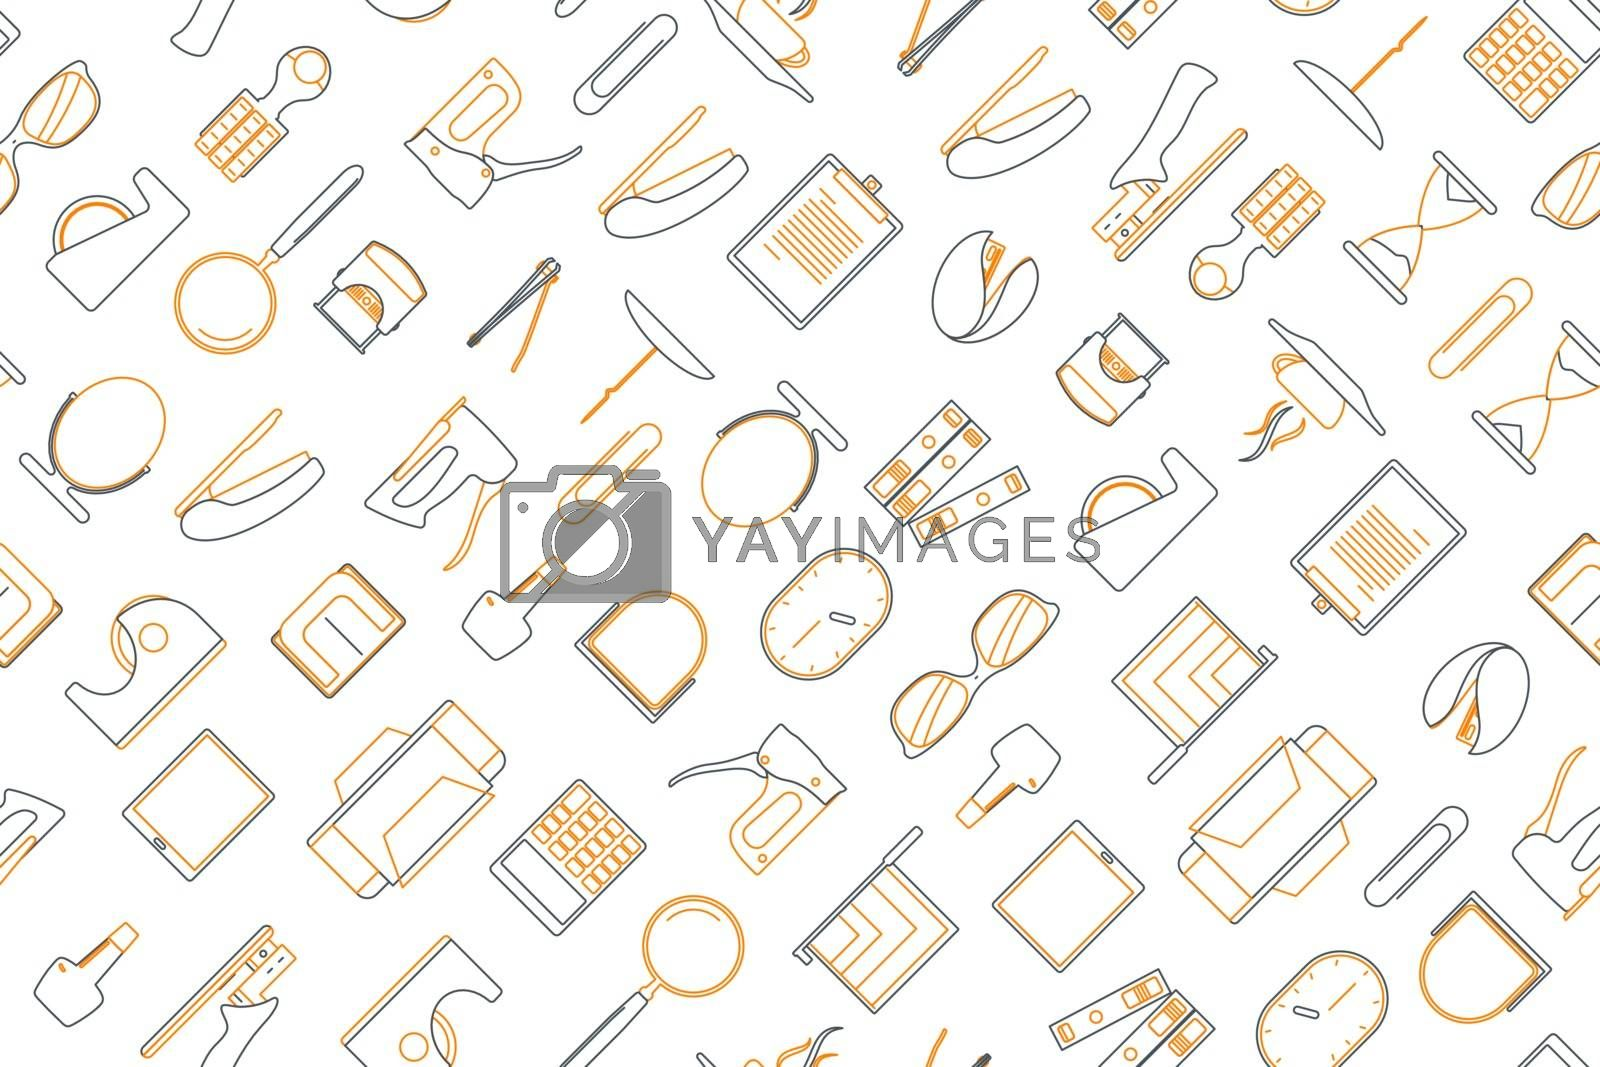 Clip art of office elements arrange on seamless background. by narinbg